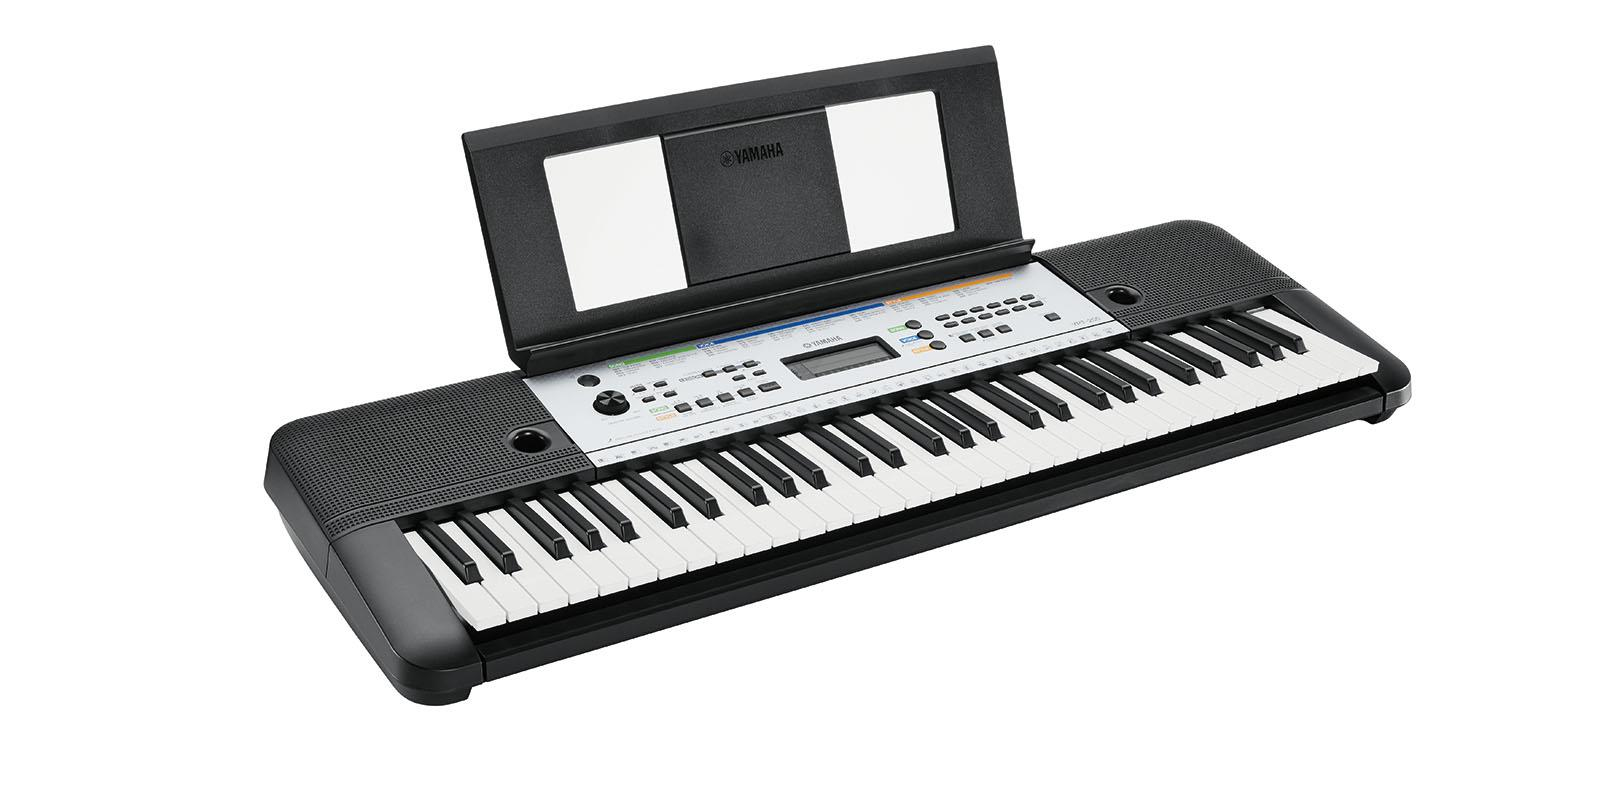 musik keyboard ypt 255 yamaha 61 tasten b ware ebay. Black Bedroom Furniture Sets. Home Design Ideas